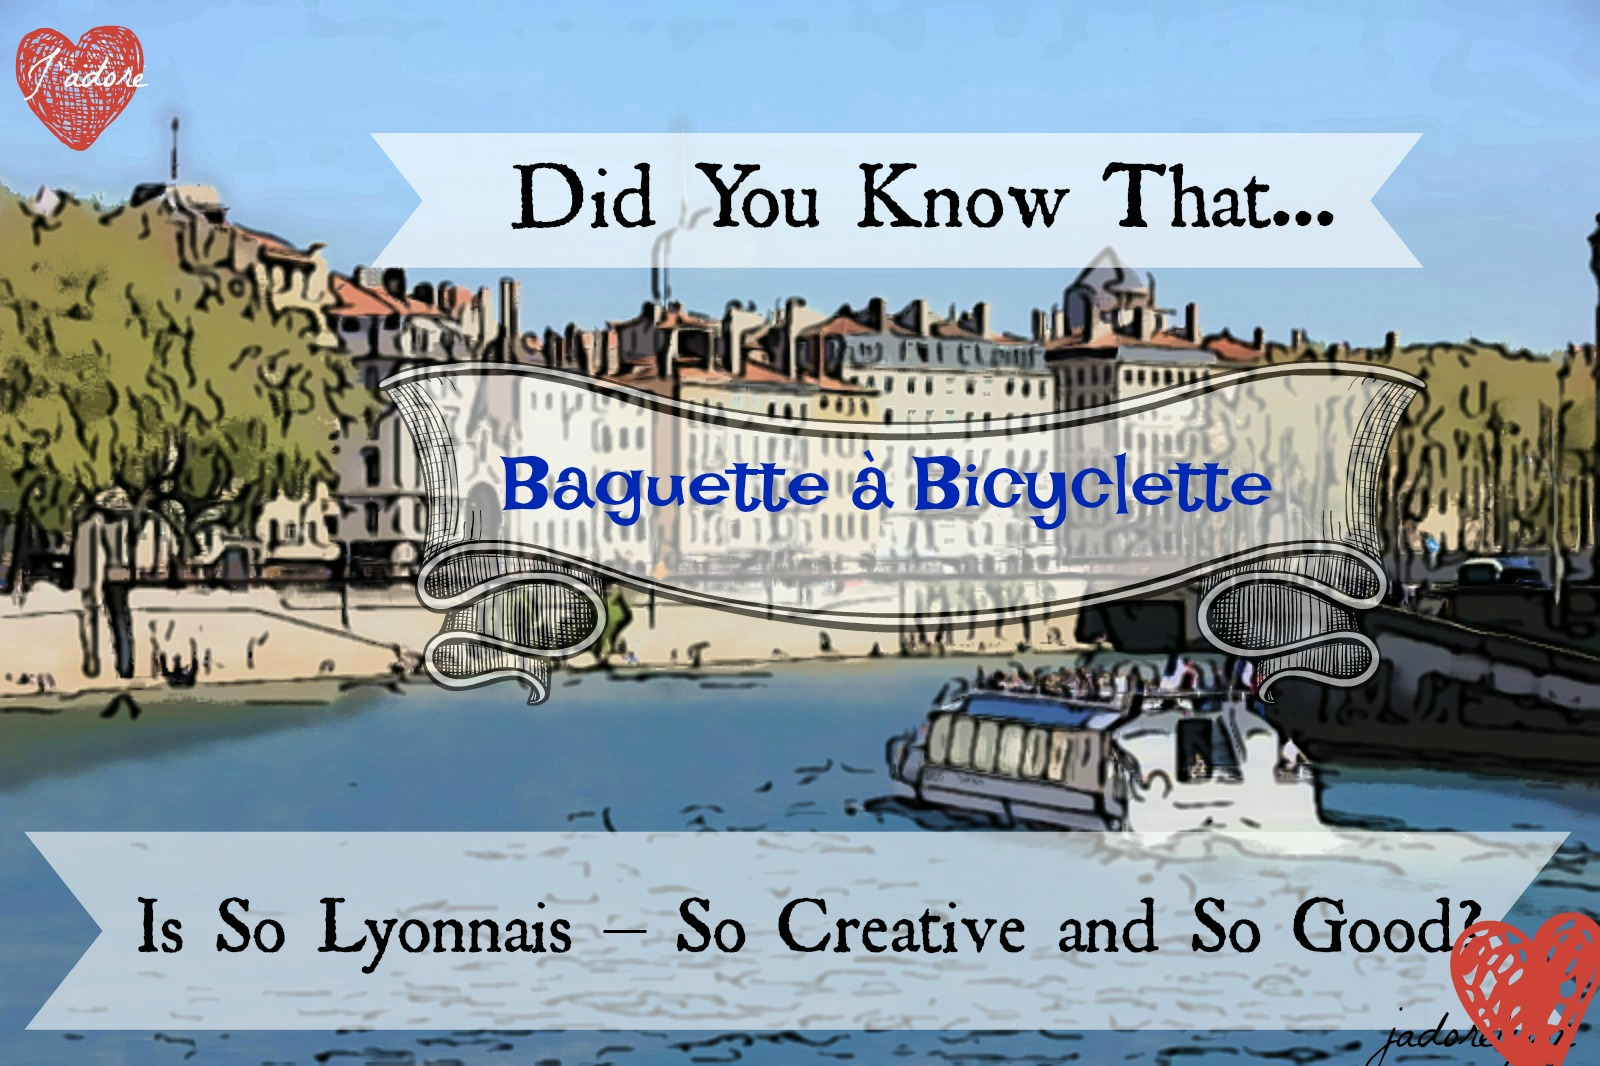 Did you know that Baguette à Bicyclette